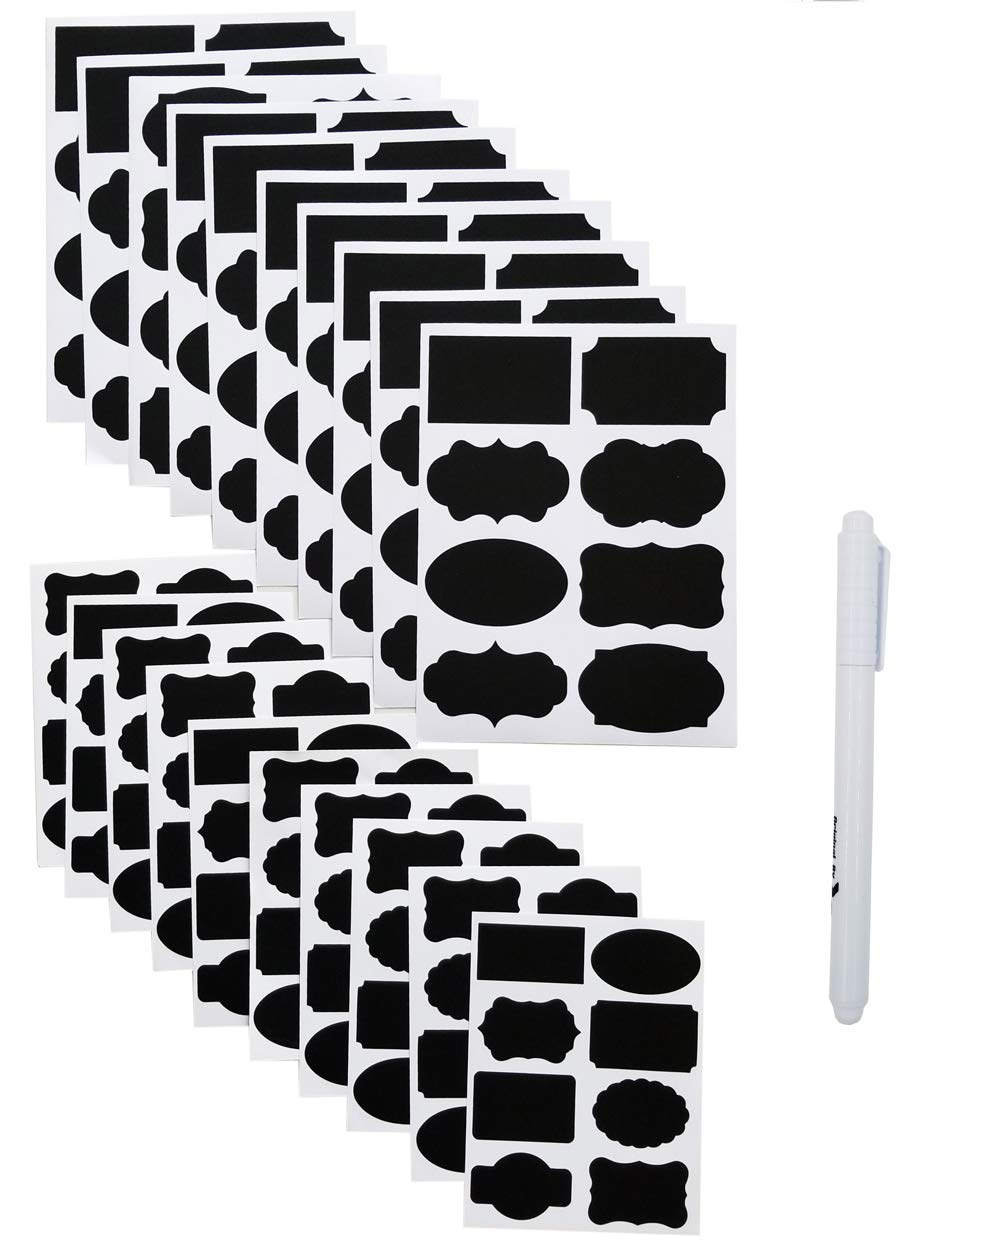 160 PCS Chalkboard Labels, Sackorange Pantry Stickers for JARS,Mason, Spice, Glass and Canisters, Large Reusable Waterproof Blackboard Vinyl Set, Dishwasher Safe with White Chalk Marker